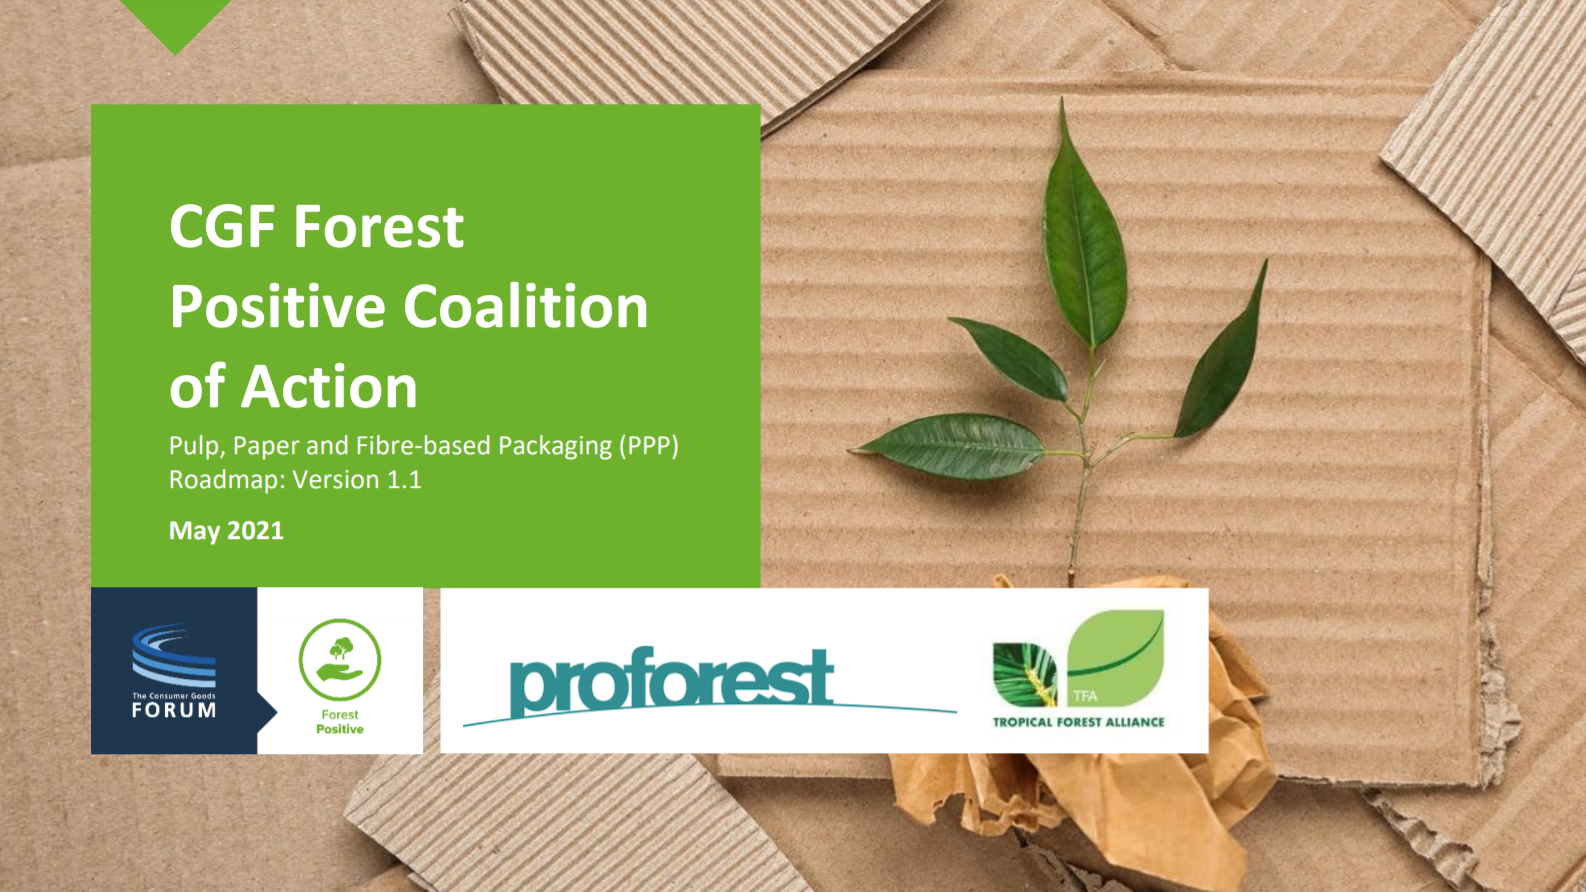 CGF Forest Positive Coalition of Action Pulp, Paper and Fiber-based Packaging (PPP) Roadmap: Version 1.1